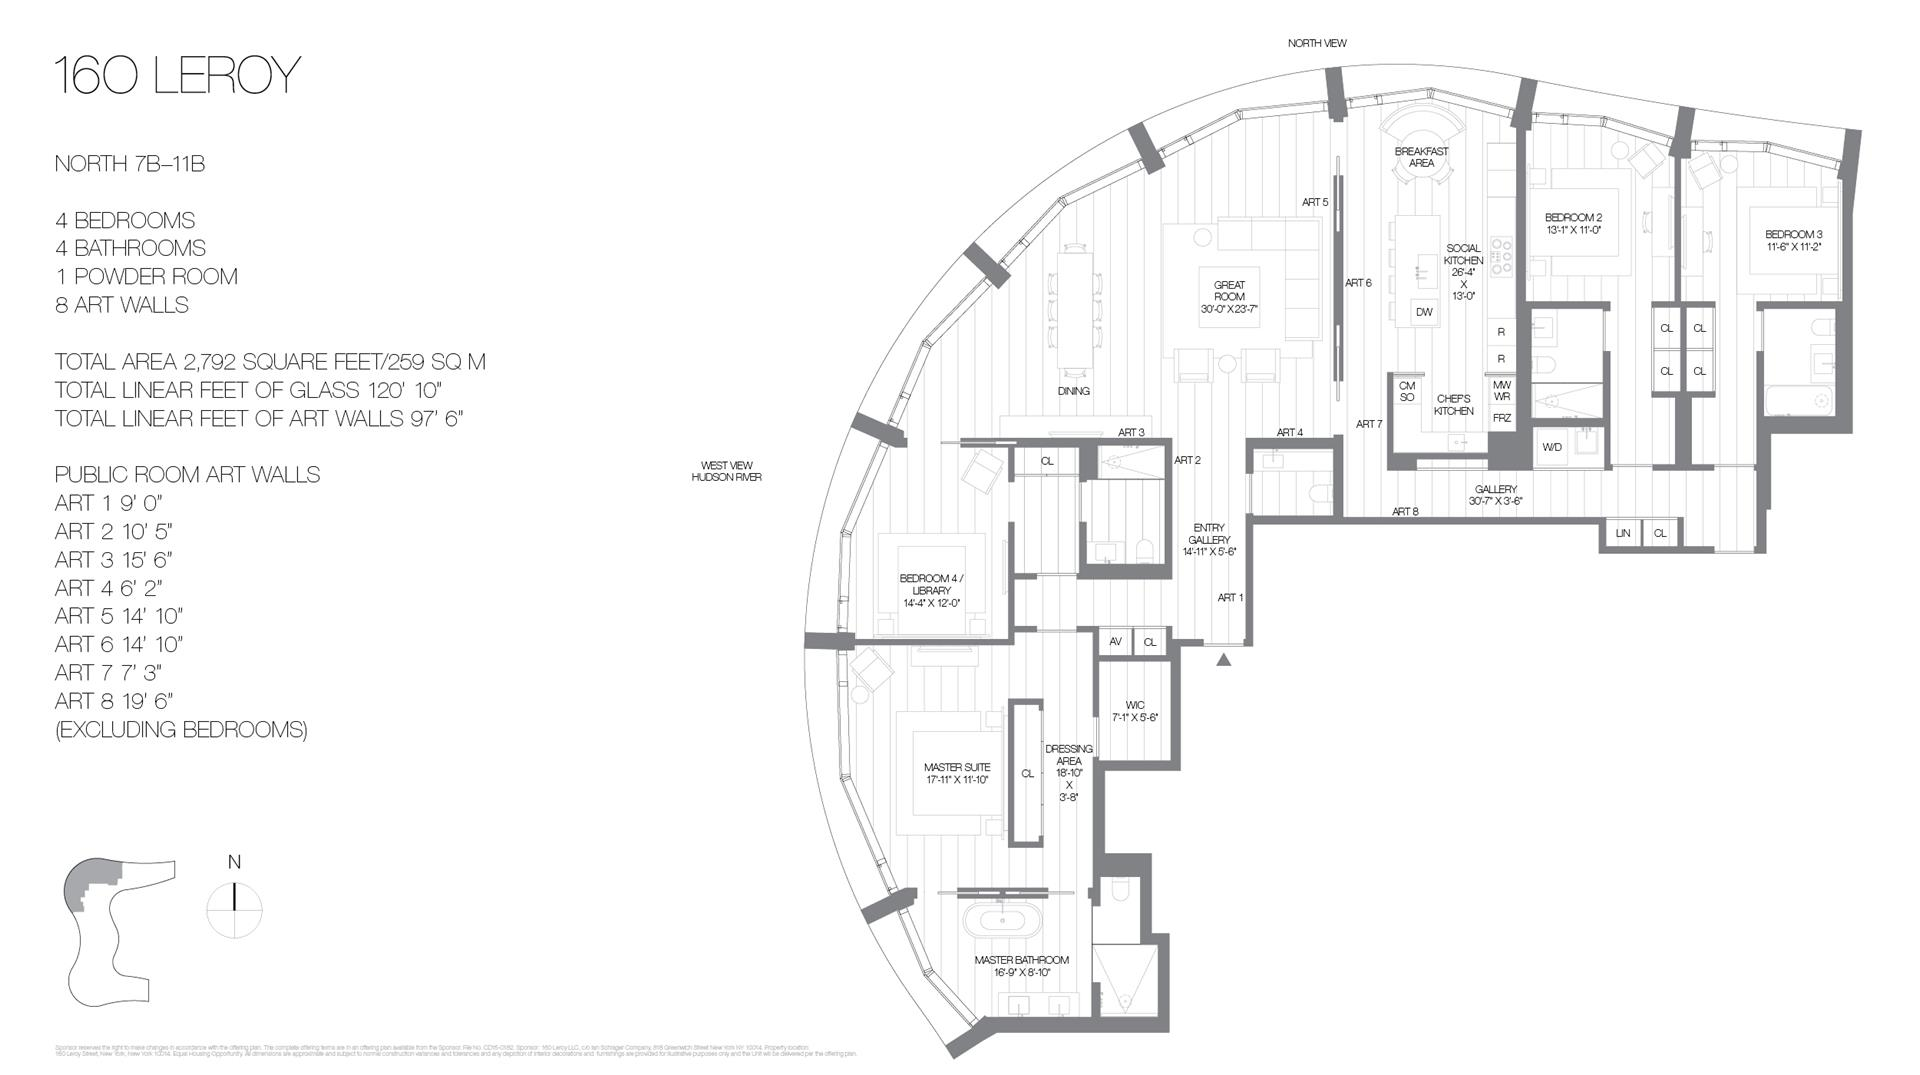 Floor plan of 160 Leroy St, NORTH8B - West Village - Meatpacking District, New York